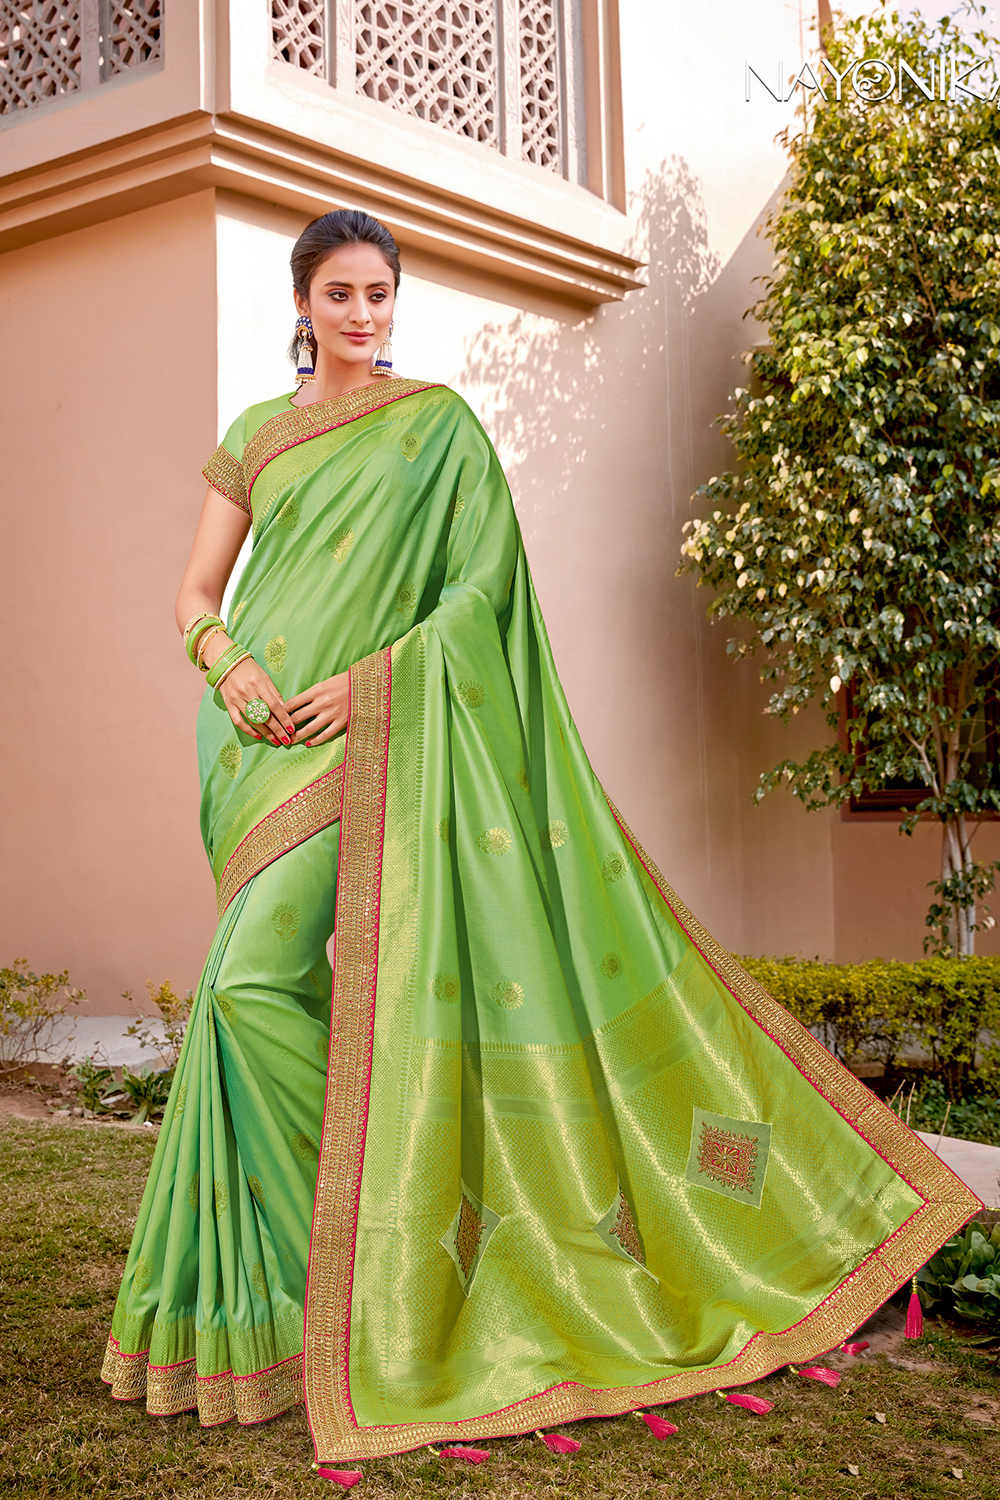 As vibrant as freshly sporuted greens in the natur saree